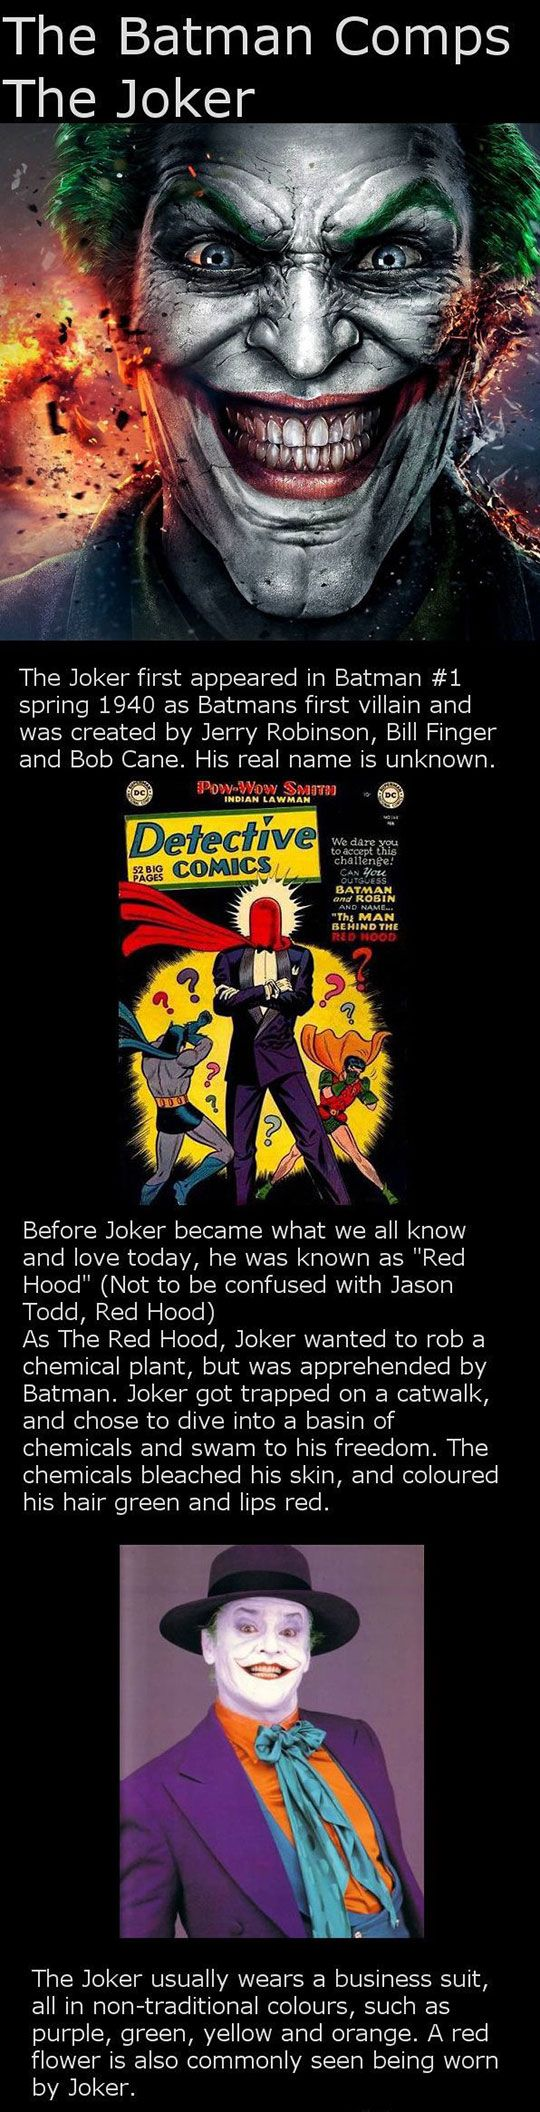 The Joker's Origins (click to get the whole story behind the joker)